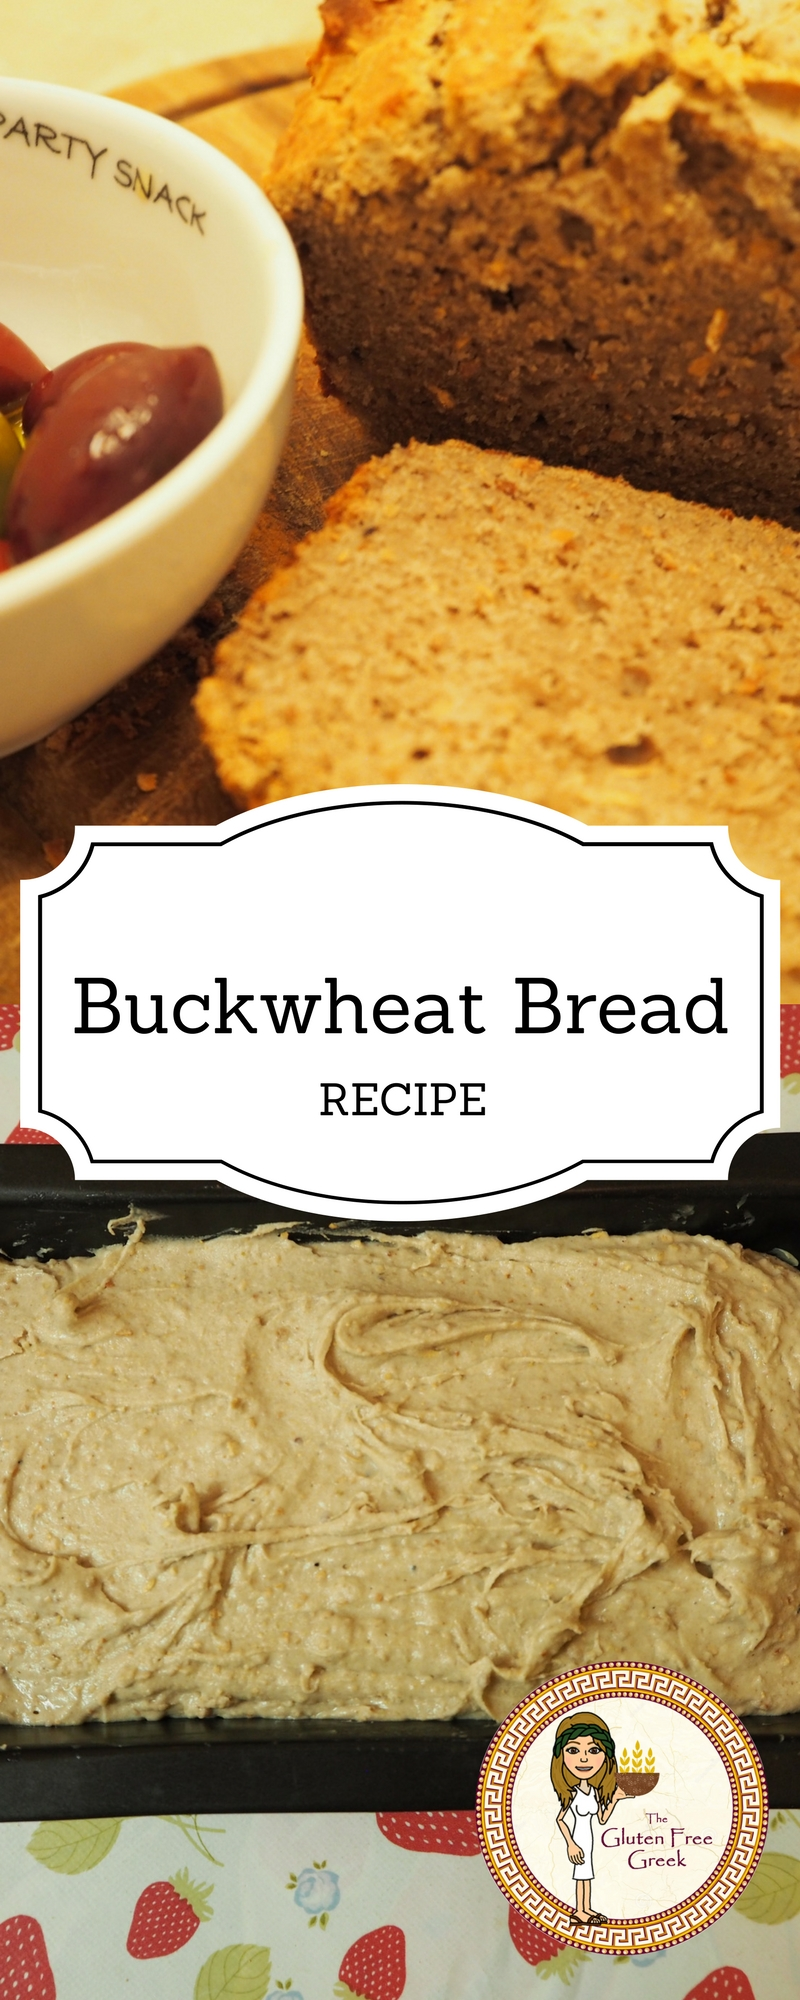 Buckwheat Bread Pinterest